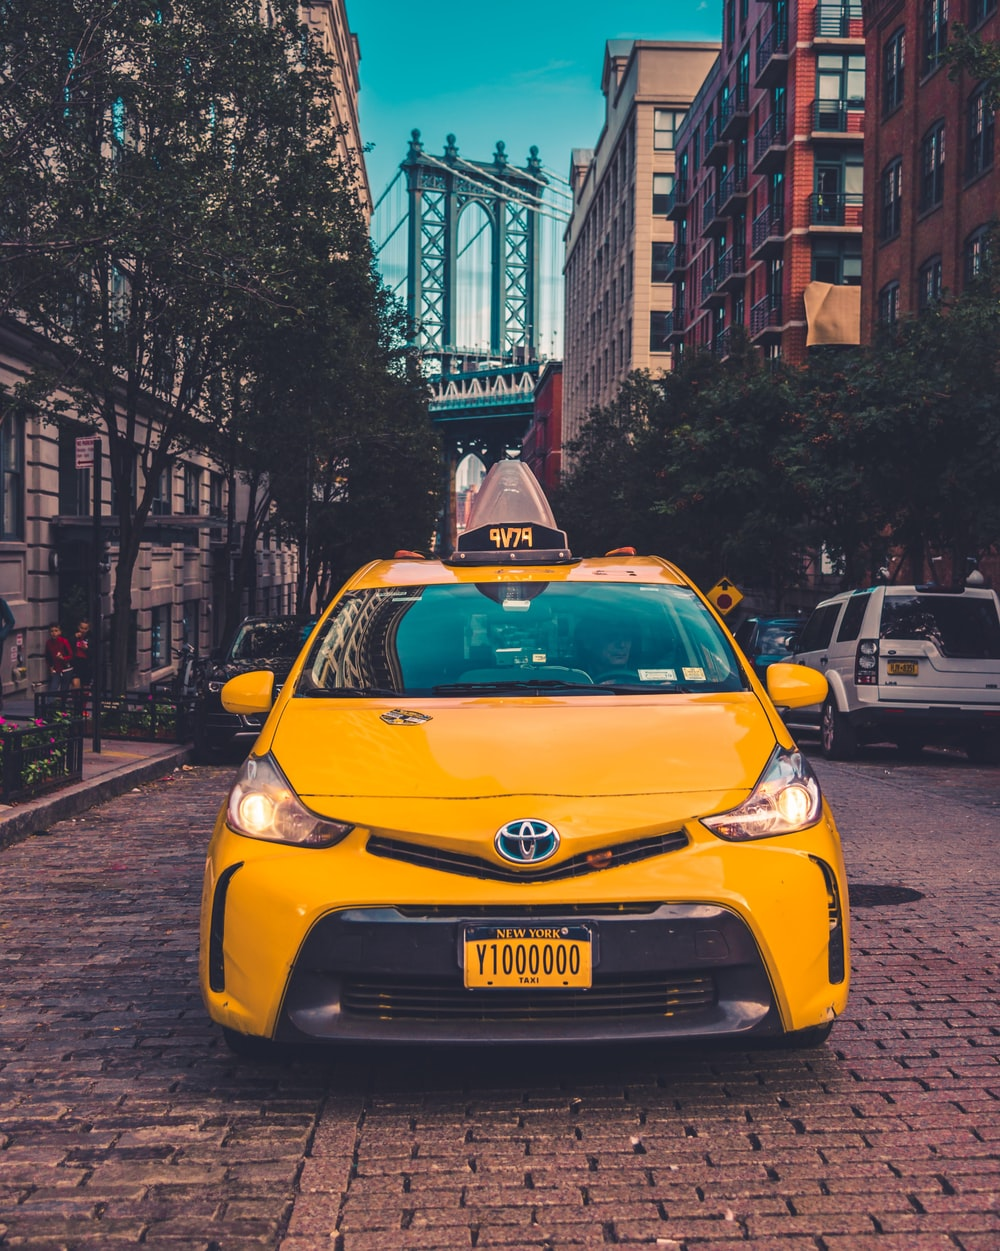 yellow Toyota taxi cab parked near building